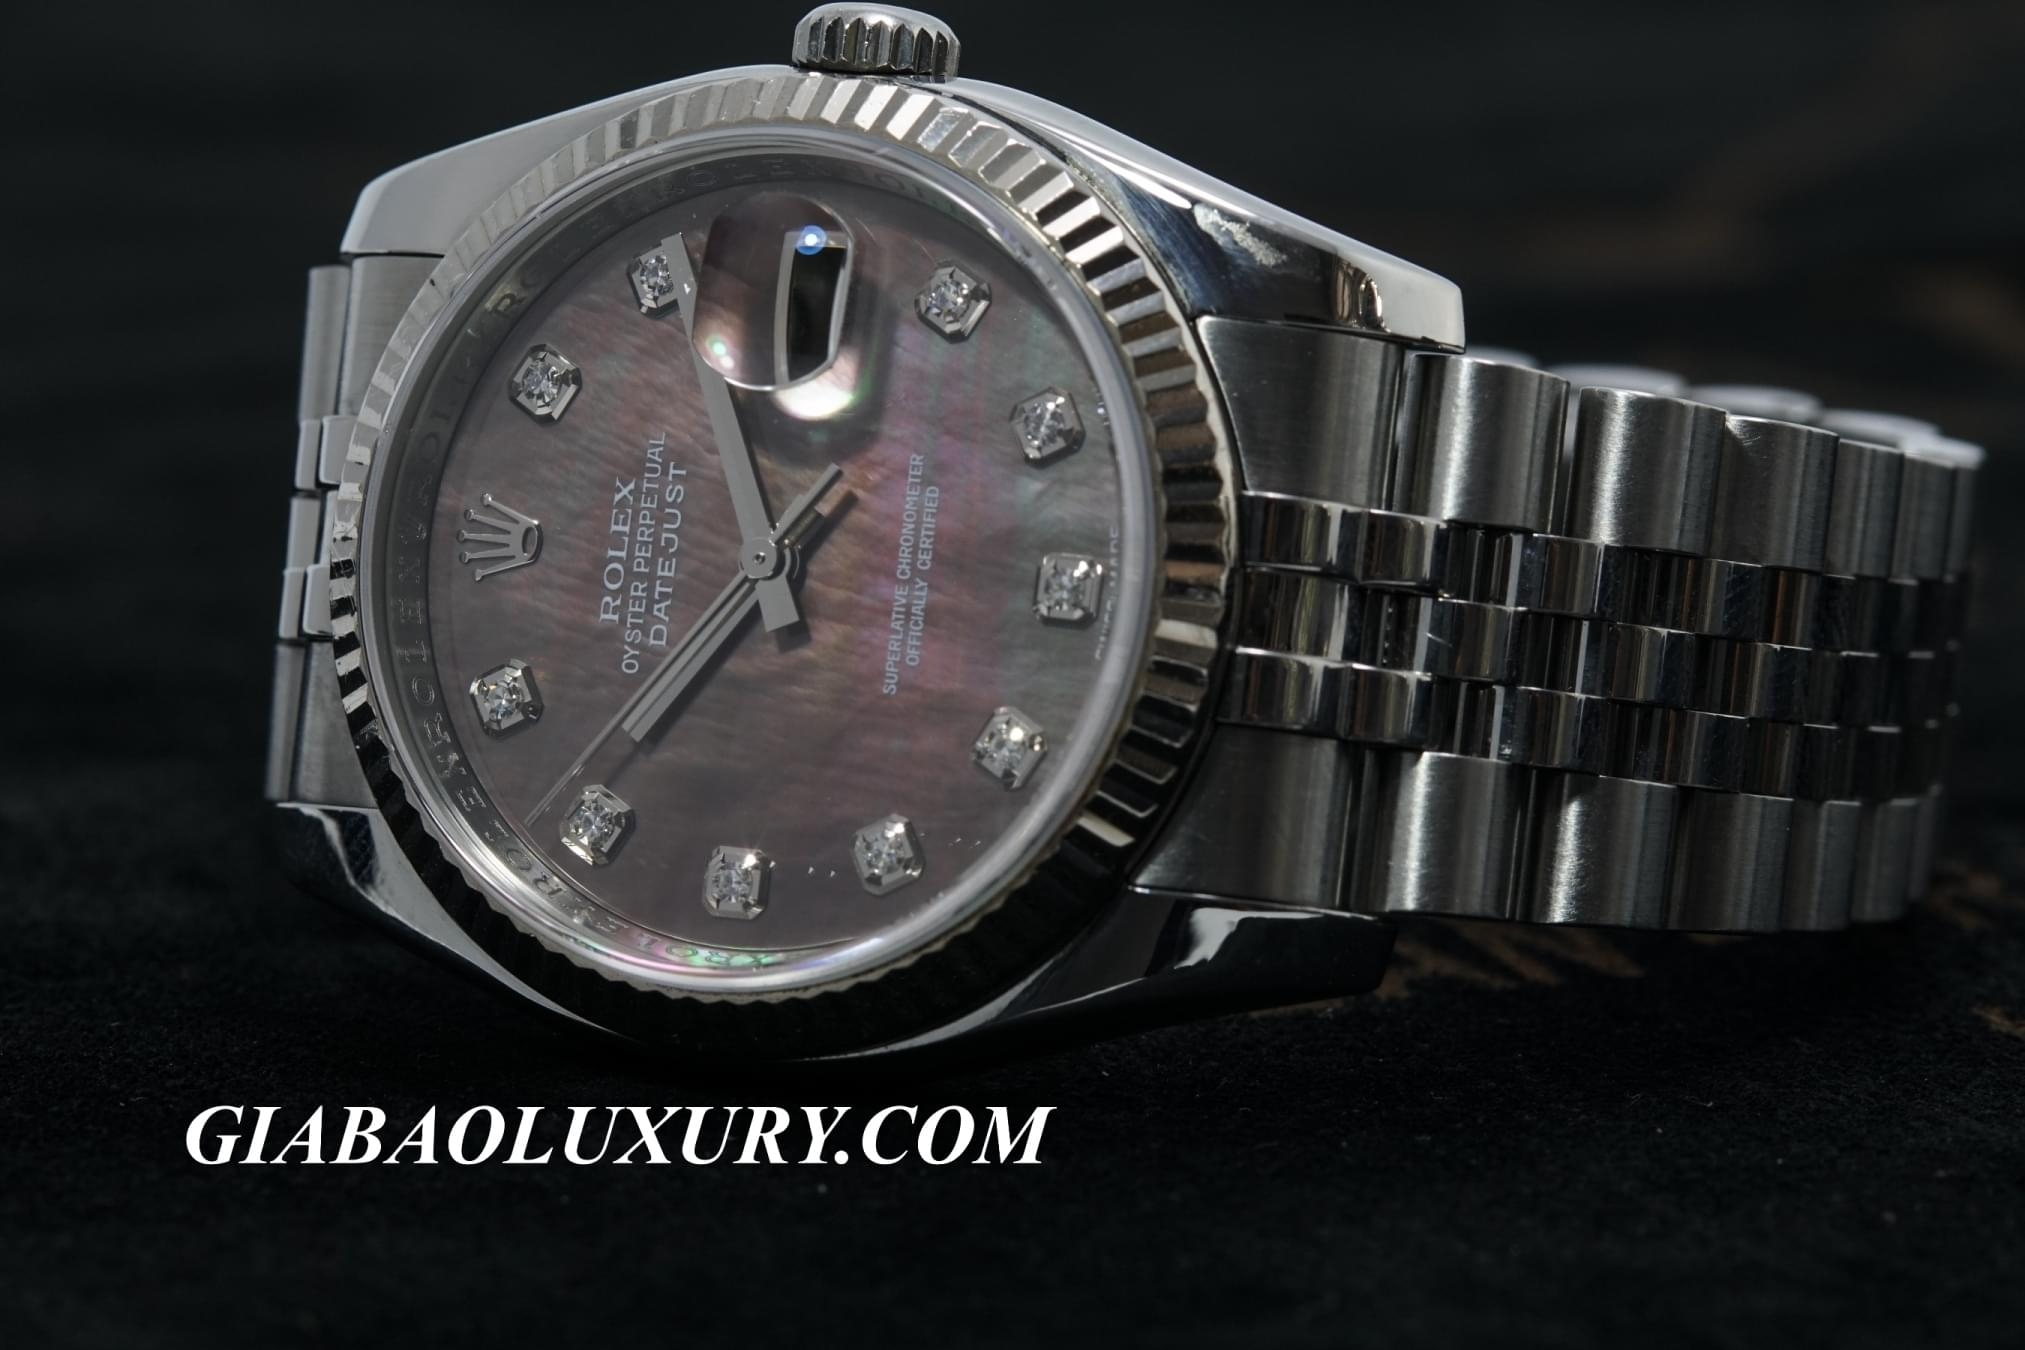 ĐỒNG HỒ ROLEX OYSTER PERPETUAL DATEJUST 116234